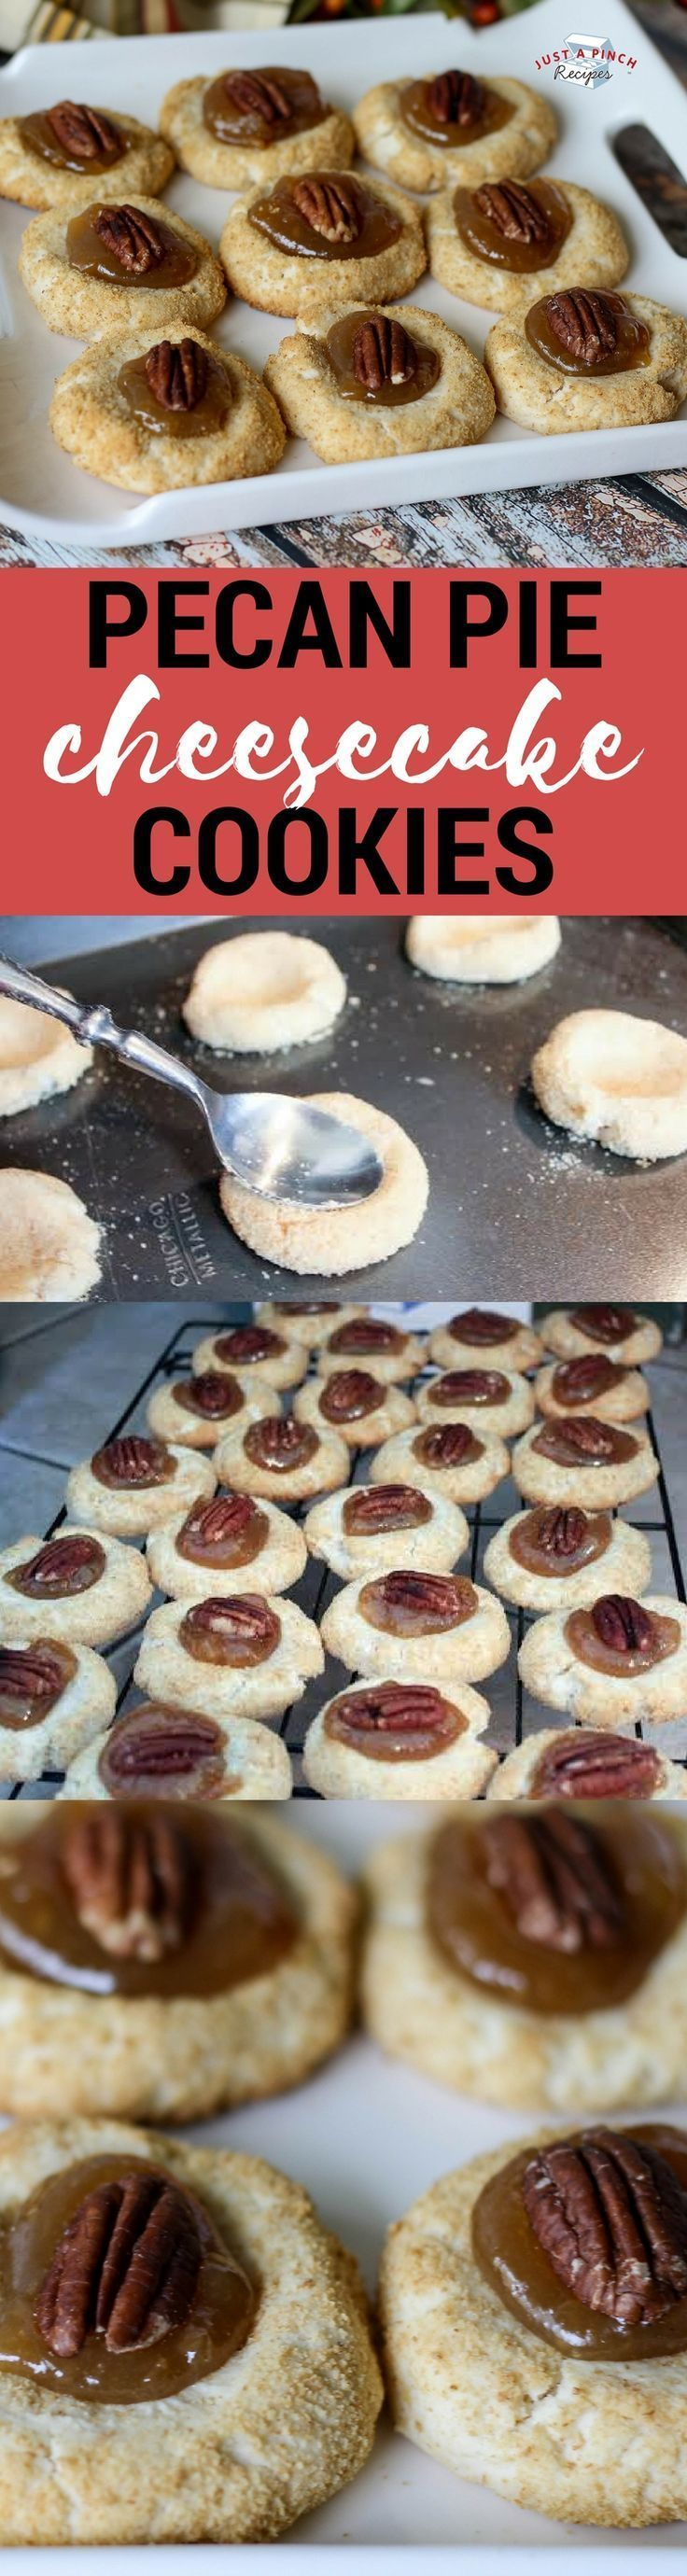 Pecan pie cheesecake cookies are easy cookies ready in less than 30 minutes #easydesserts #CookieRecipe #pecanpie